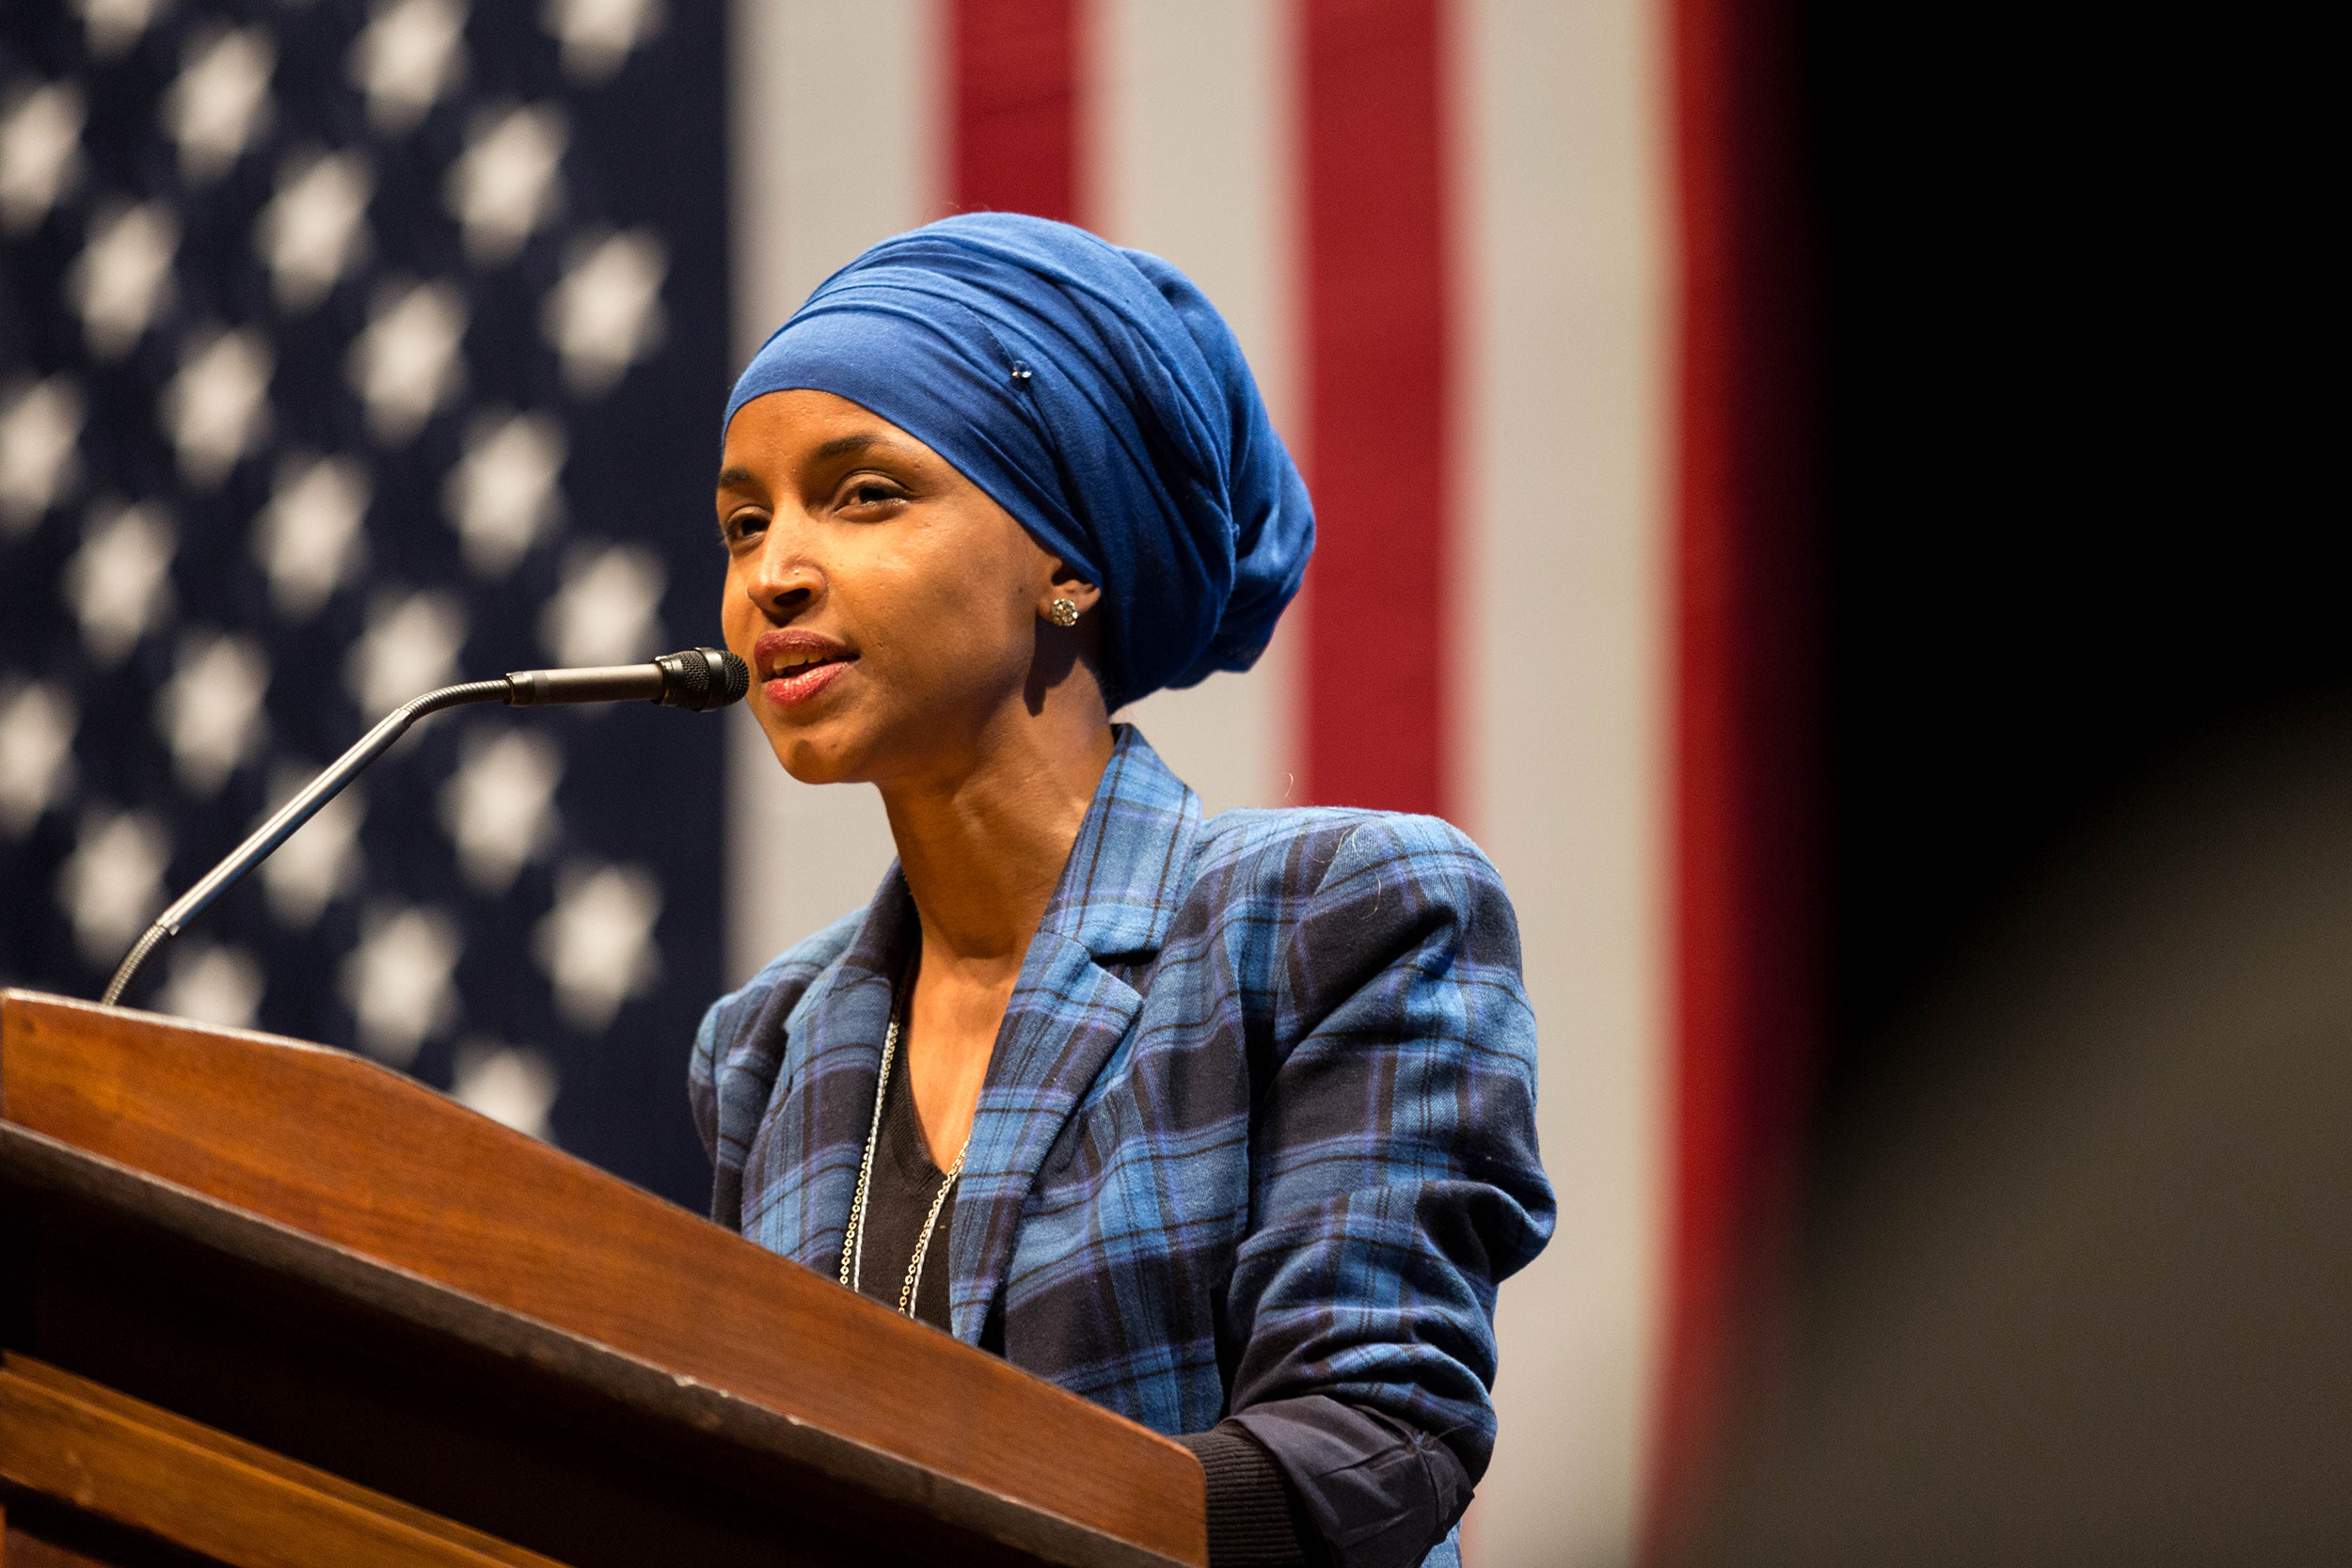 Somali American Congressional Rep. Ilhan Omar (pictured above) became the subject of serious violent threats and Islamophobia following a tweet by President Donald Trump and news coverage by The New York Post. This public villification of this politician should not be tolerated or overlooked (Lorie Shaull/Creative Commons).